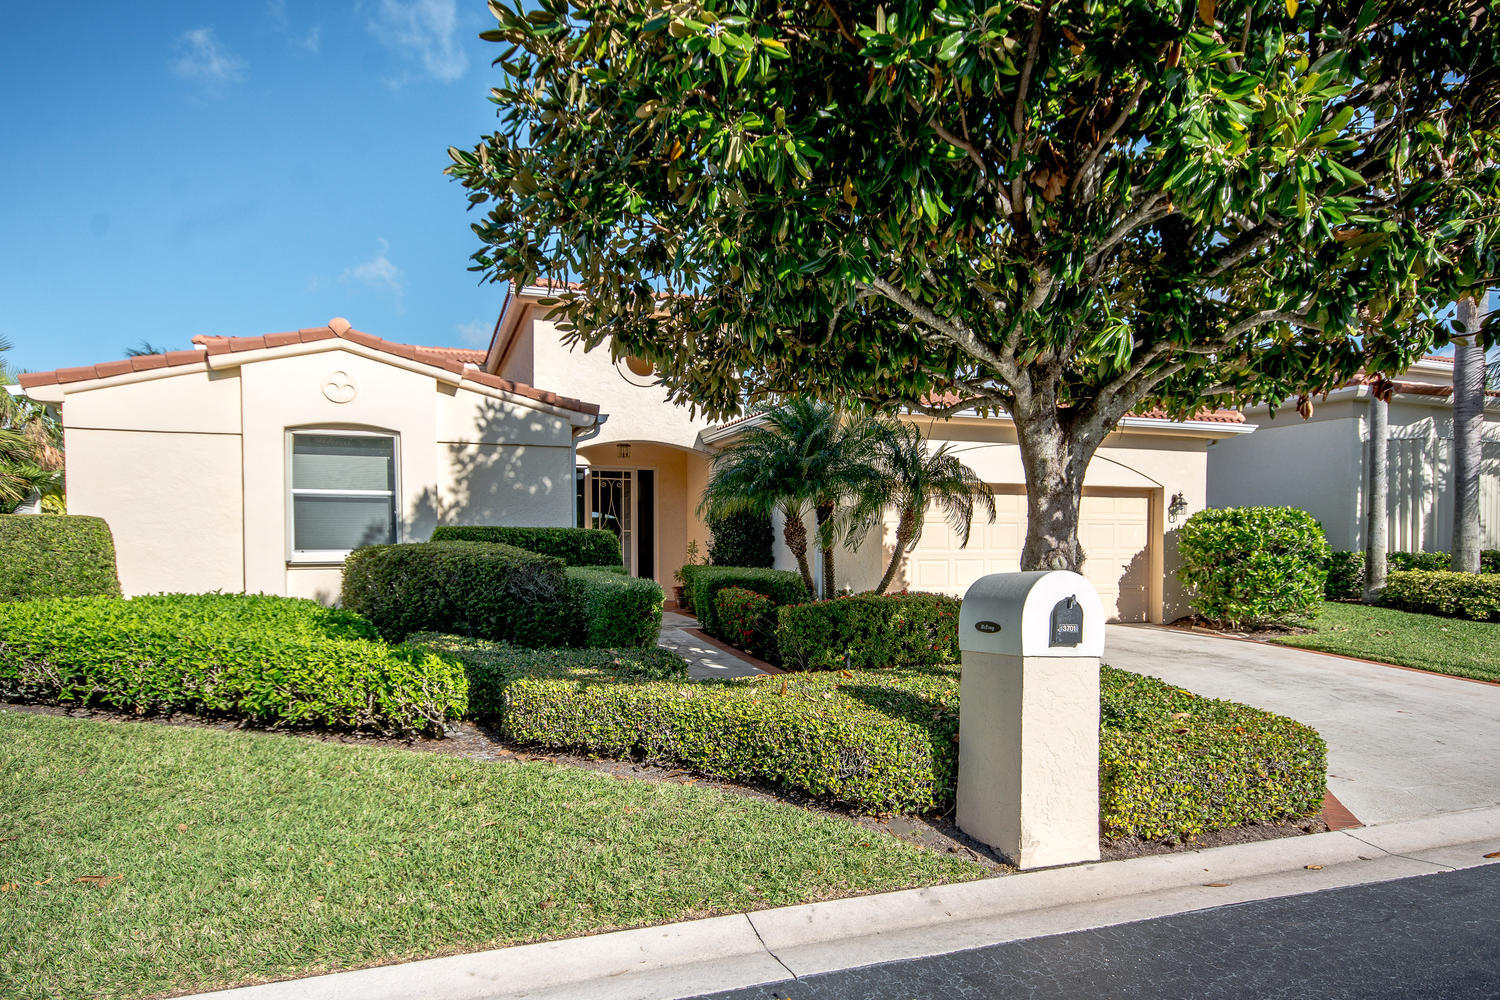 3701 Northwind Court, Jupiter, Florida 33477, 3 Bedrooms Bedrooms, ,3 BathroomsBathrooms,F,Single family,Northwind,RX-10611059